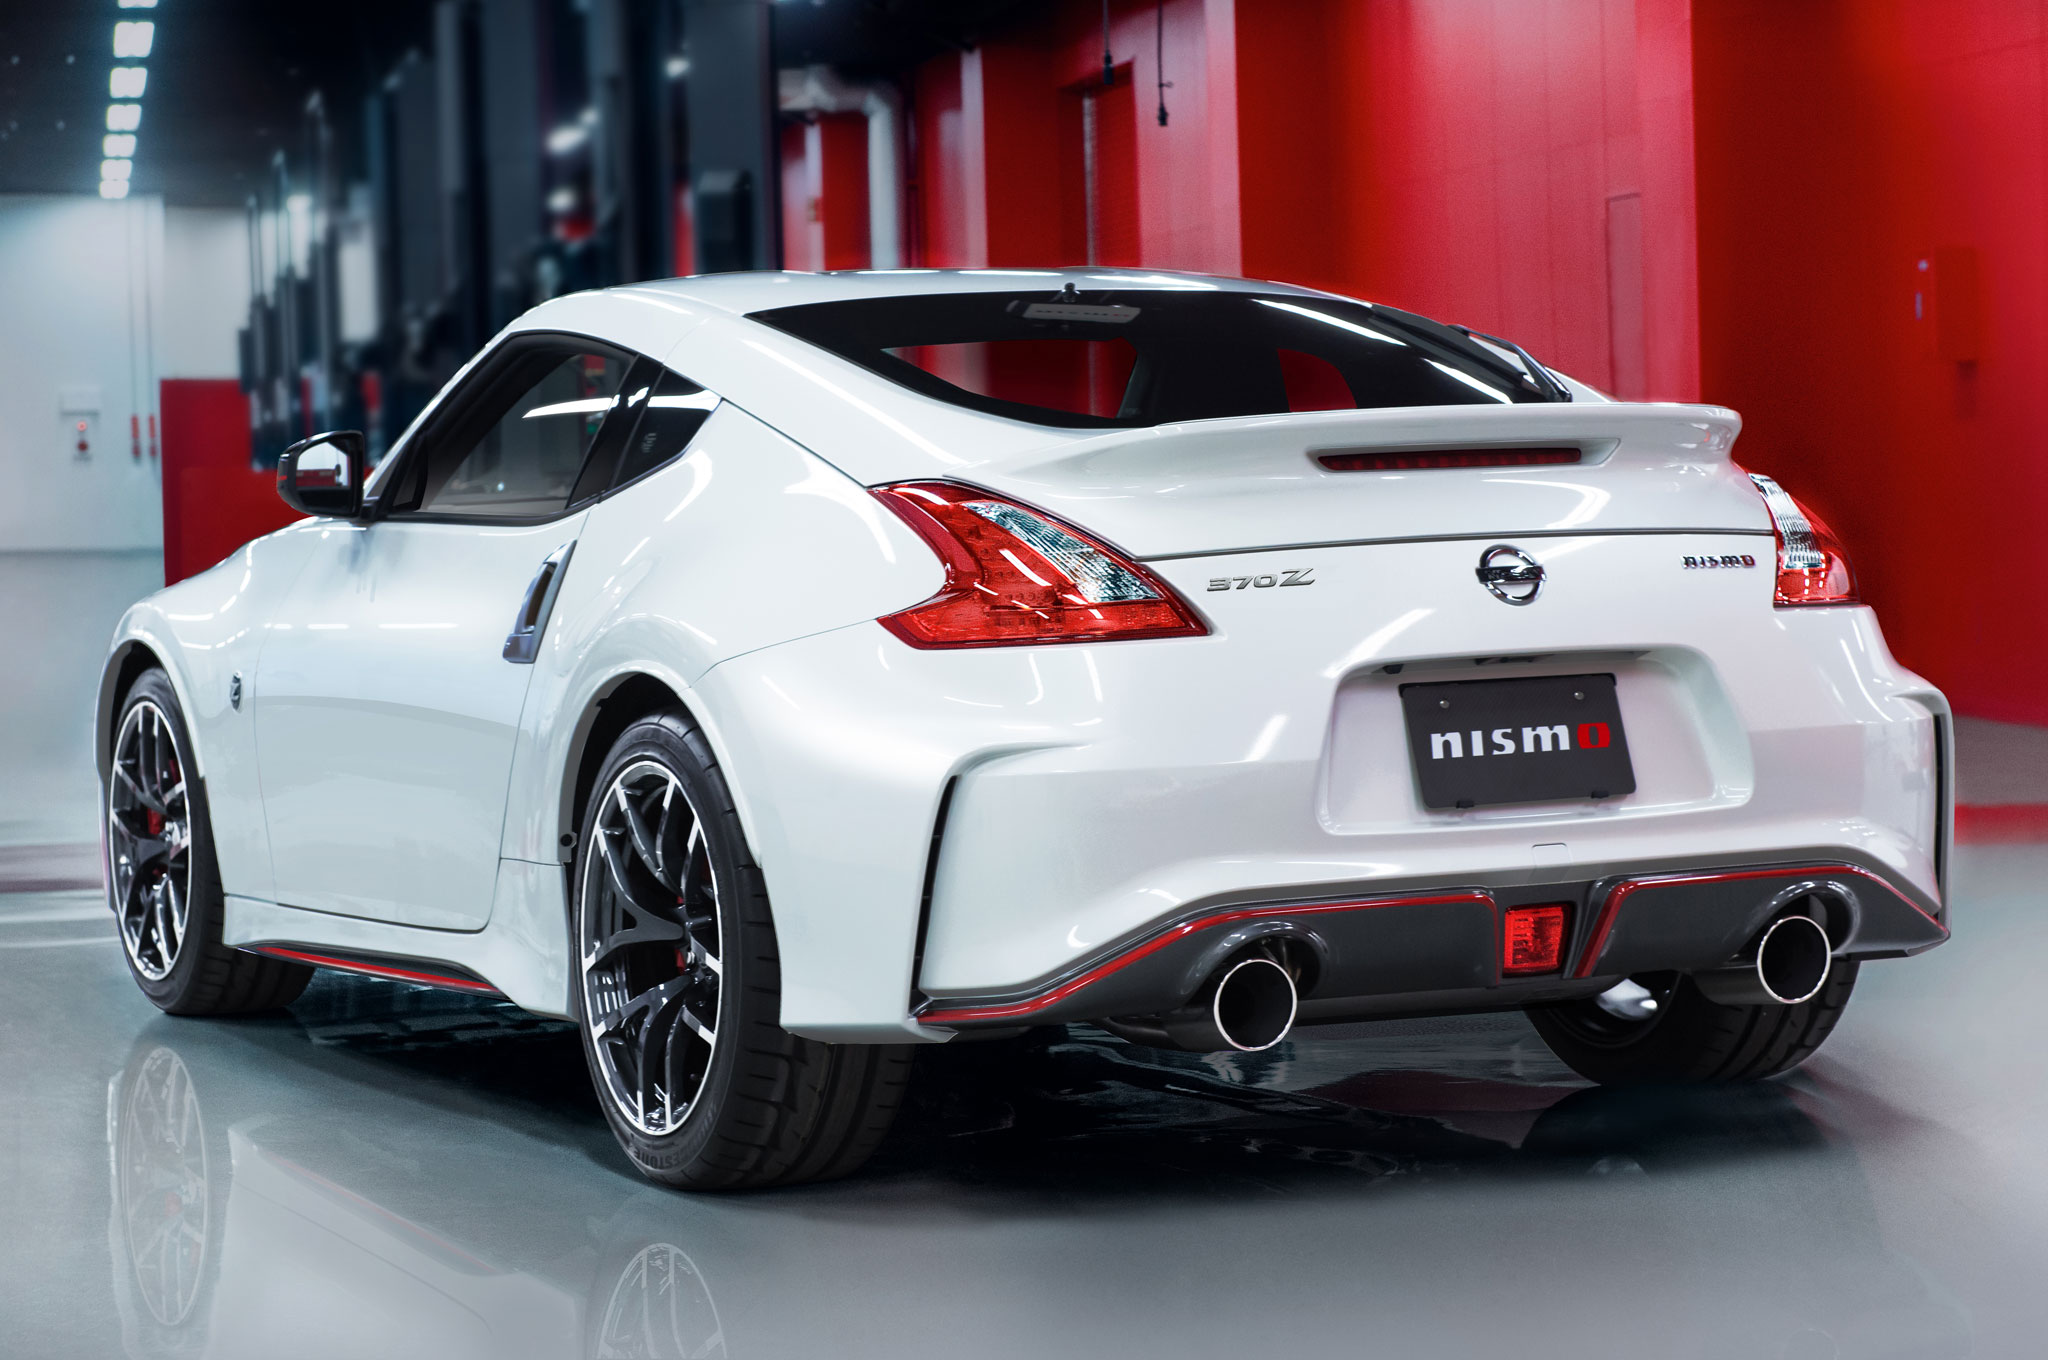 Even Aside From The New Equipment, The 2015 Nissan 370Z ...